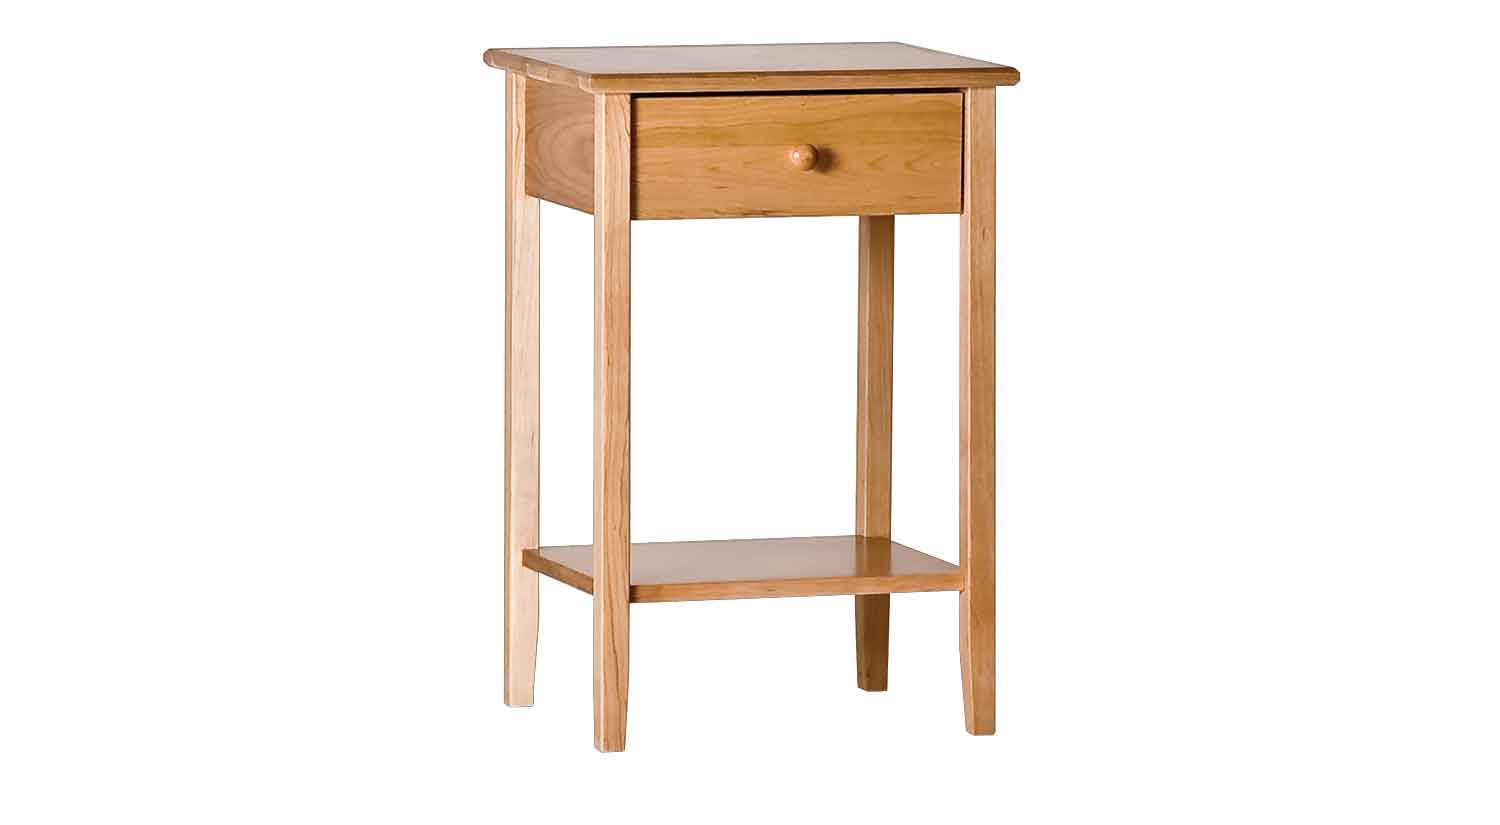 Circle Furniture - Shaker Tall Side Table